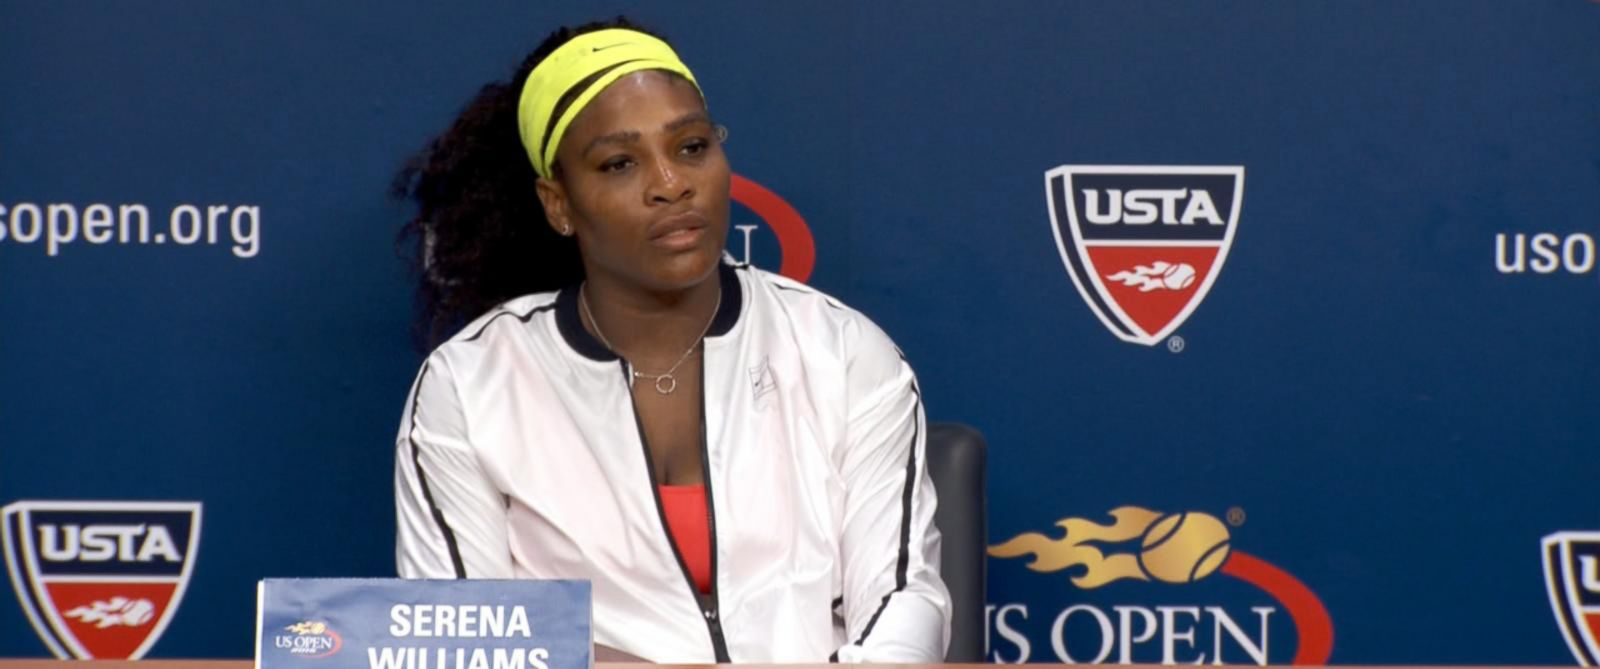 PHOTO: Serena Williams at a press conference in New York, Sept. 11, 2015.